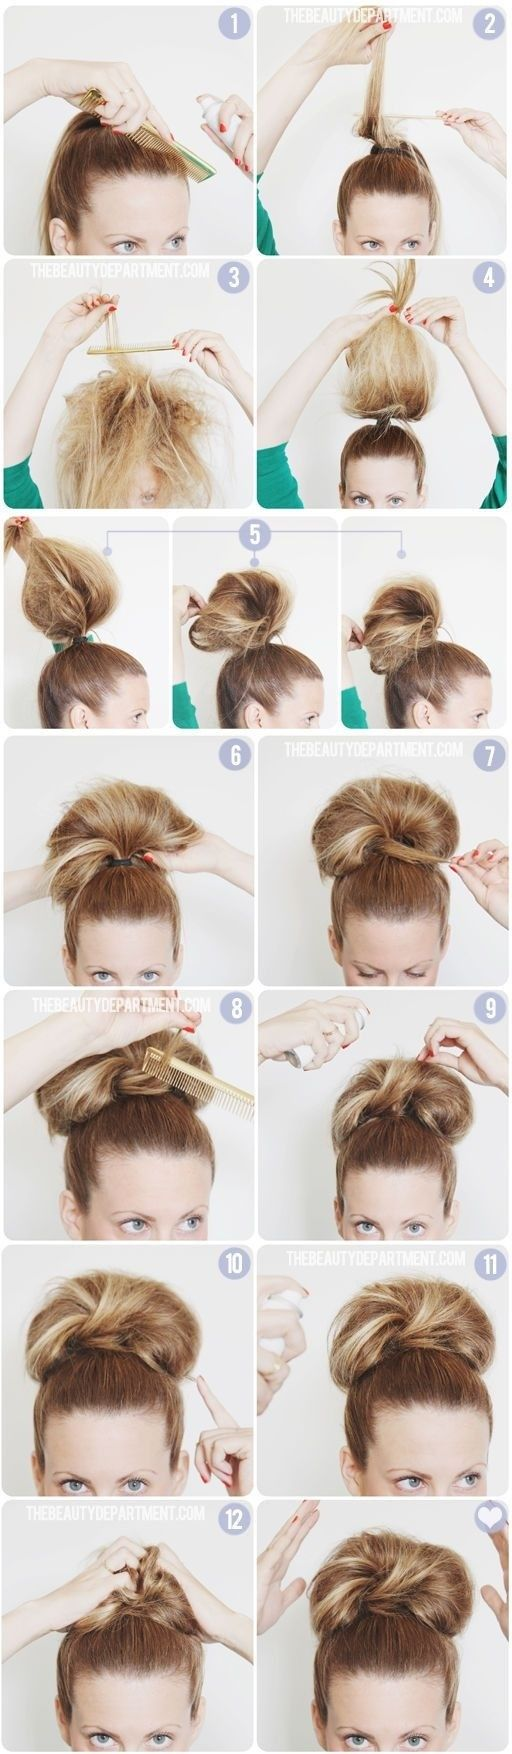 10 Super Easy Updo Hairstyles Tutorials Popular Haircuts Easy Bun Hairstyles Hair Styles Easy Updo Hairstyles